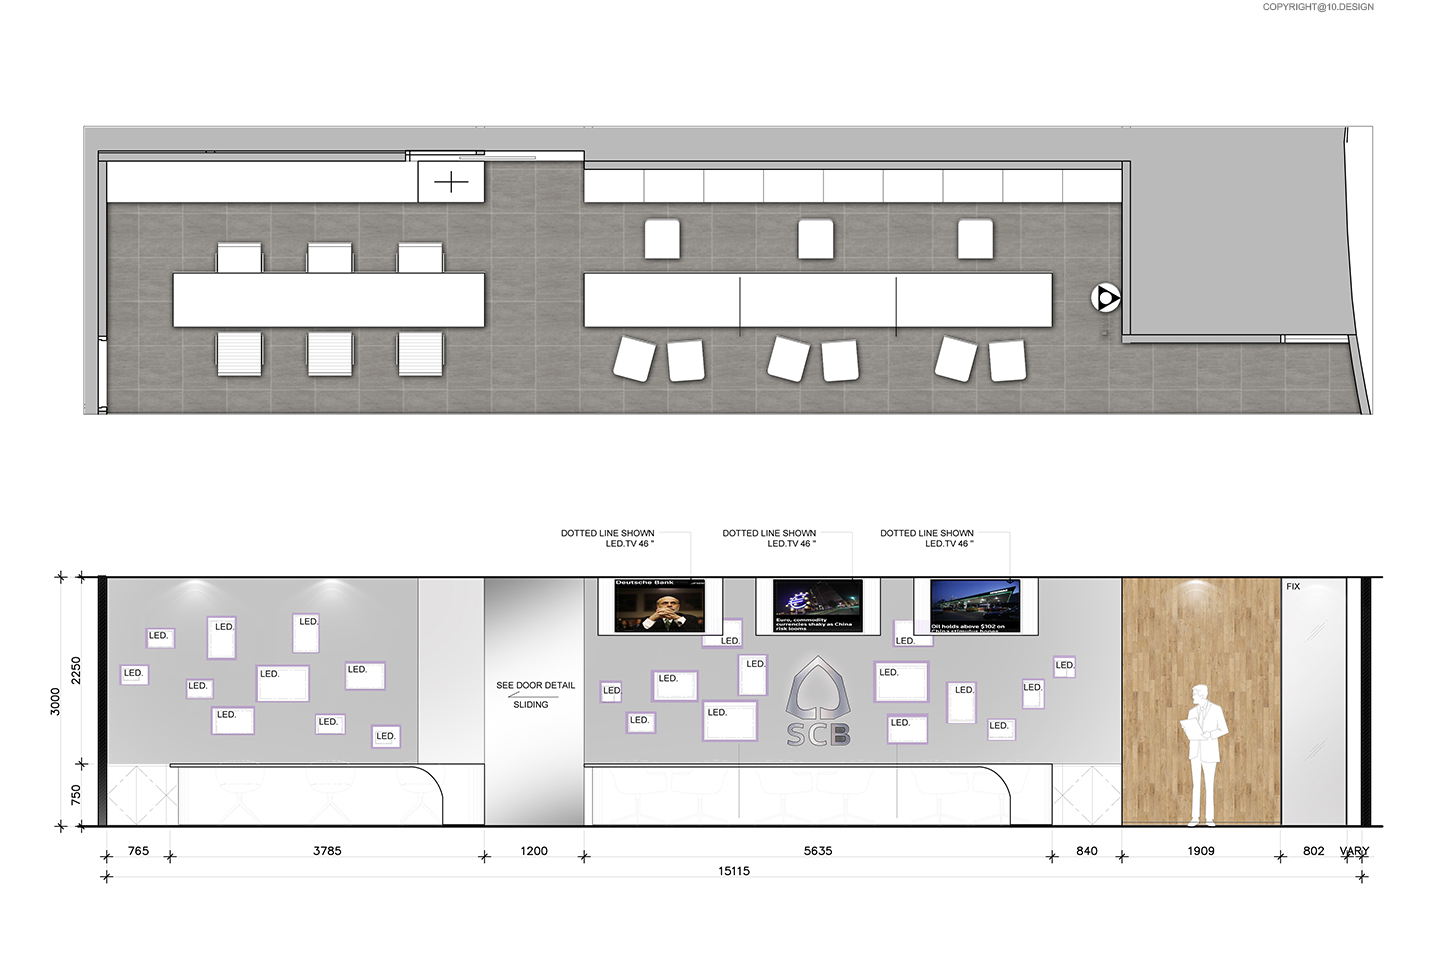 10 DESIGN SCB BANKING BUSINESS CENTER CENTRAL WORLD INTERIOR COMMERCIAL ELEVATION 03